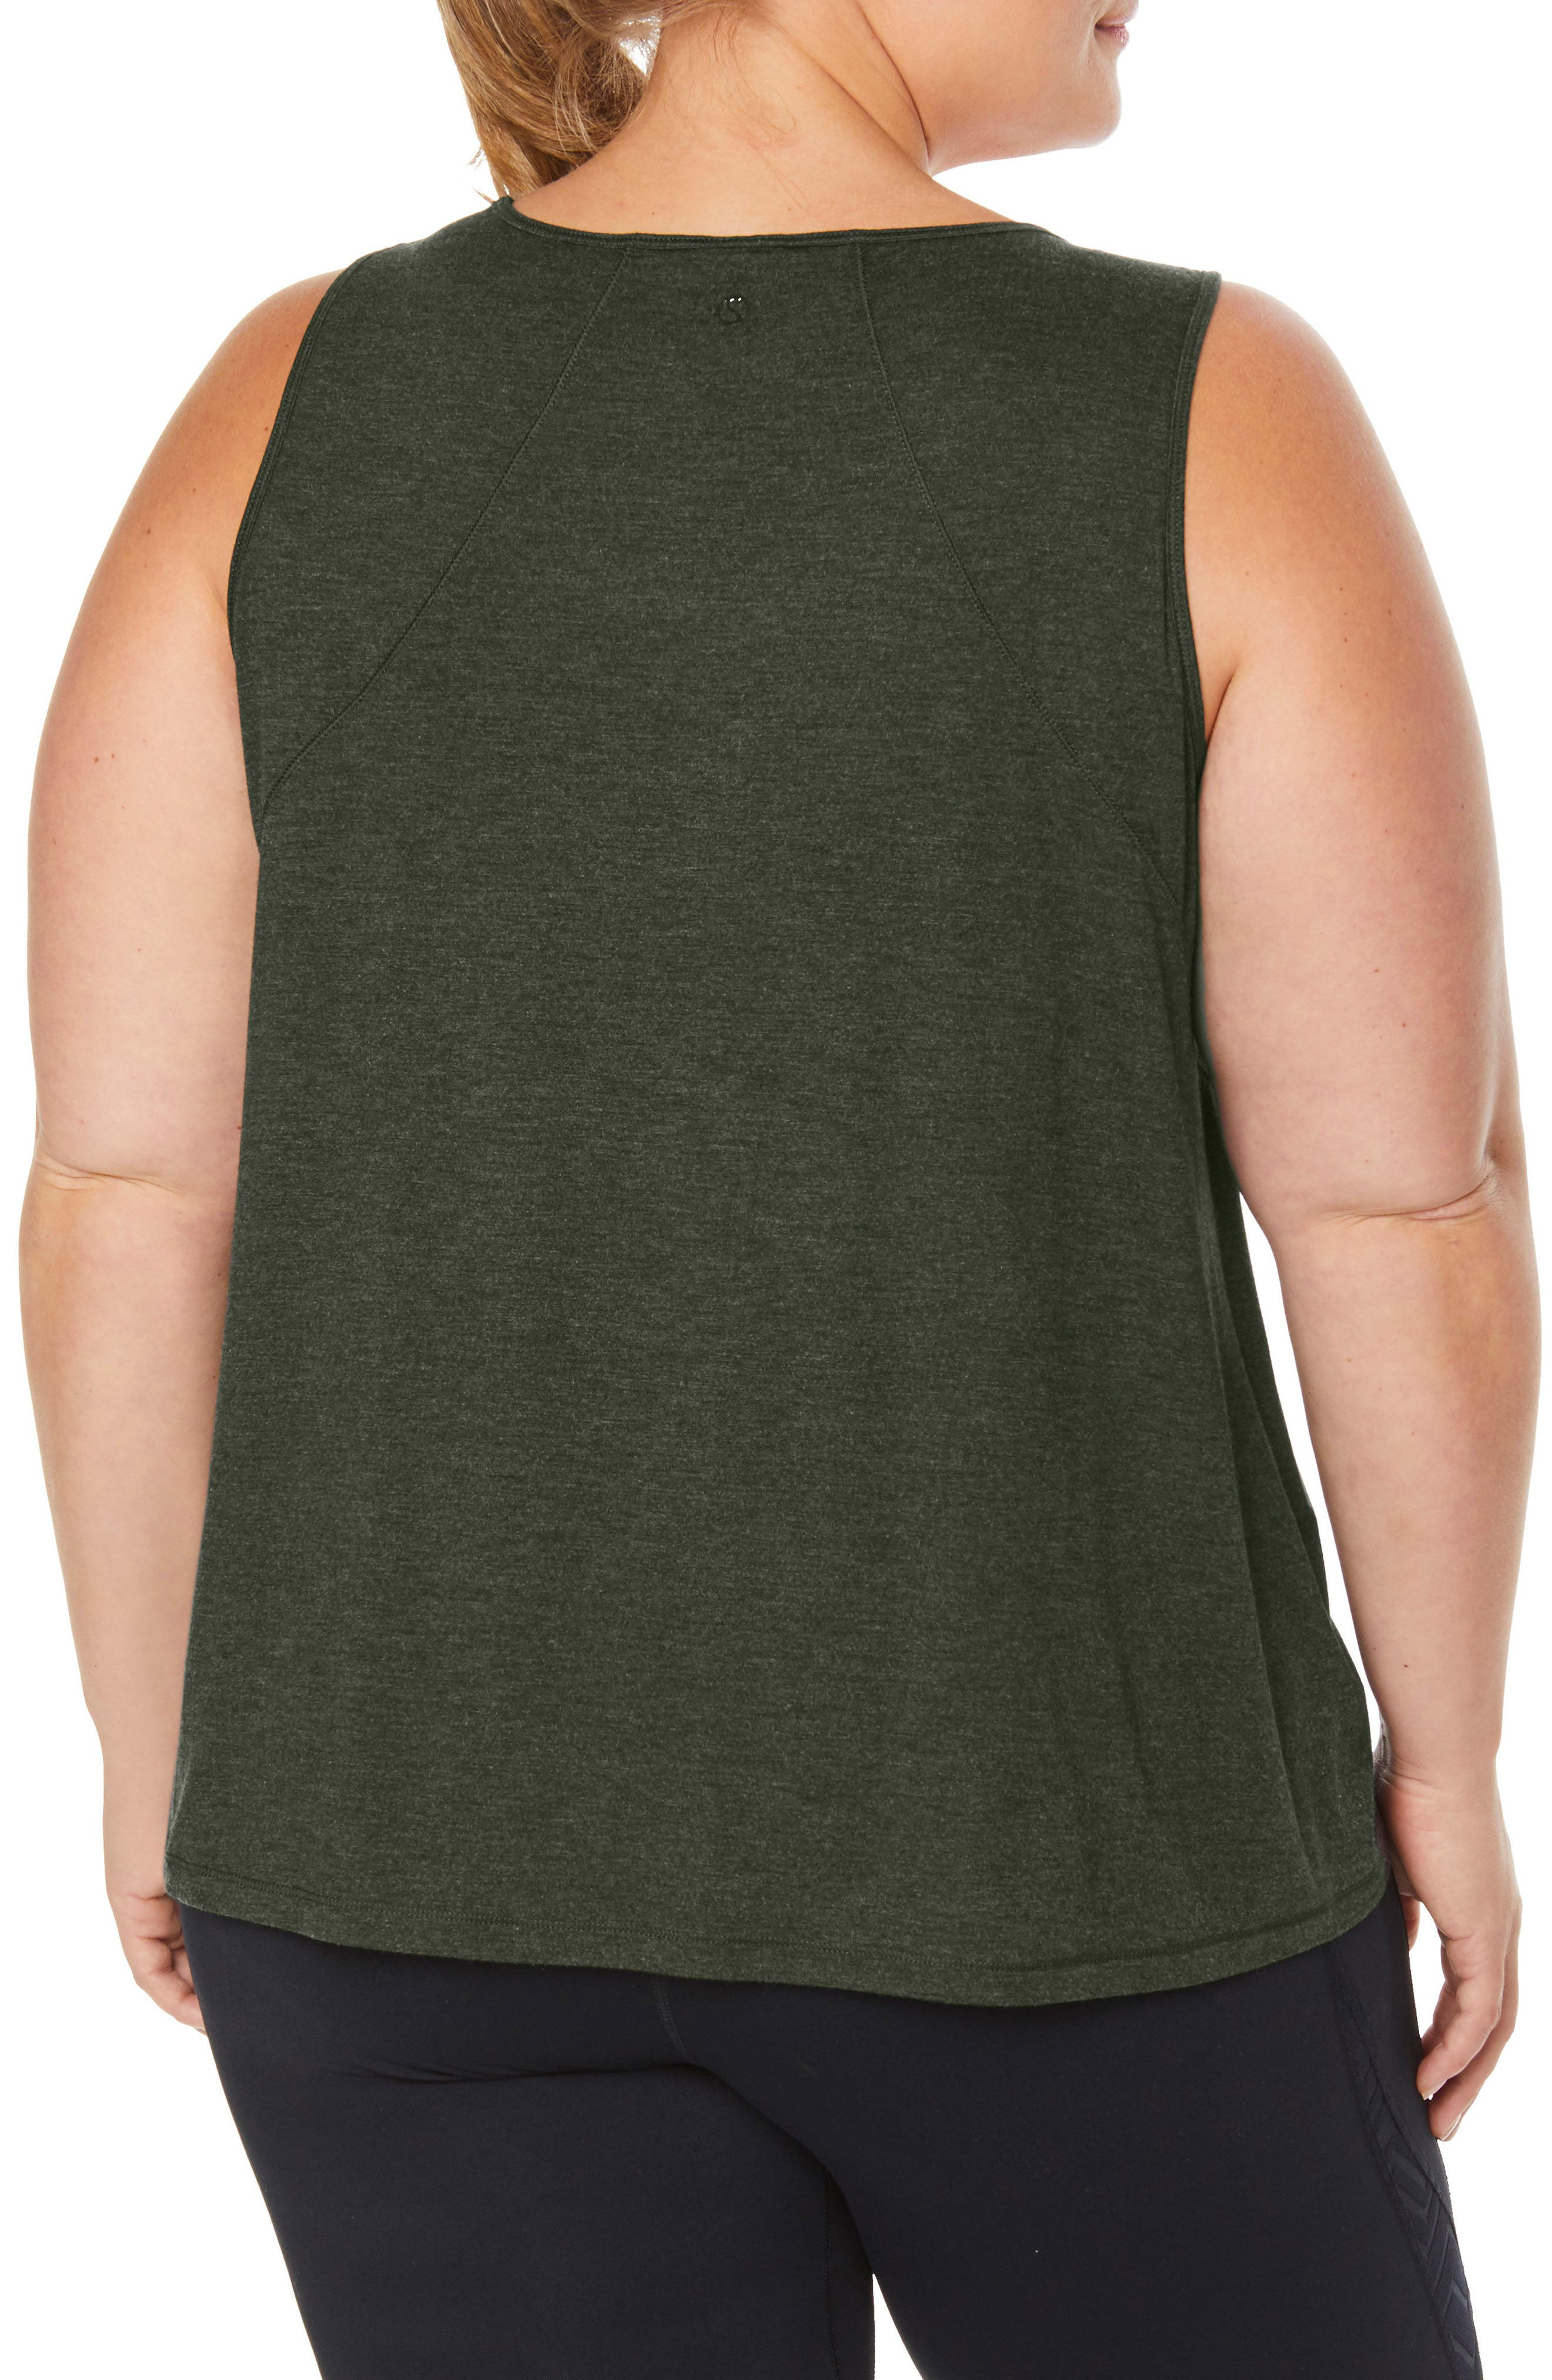 Shape Motion Tank,                             Alternate thumbnail 2, color,                             FOREST NIGHT HEATHER